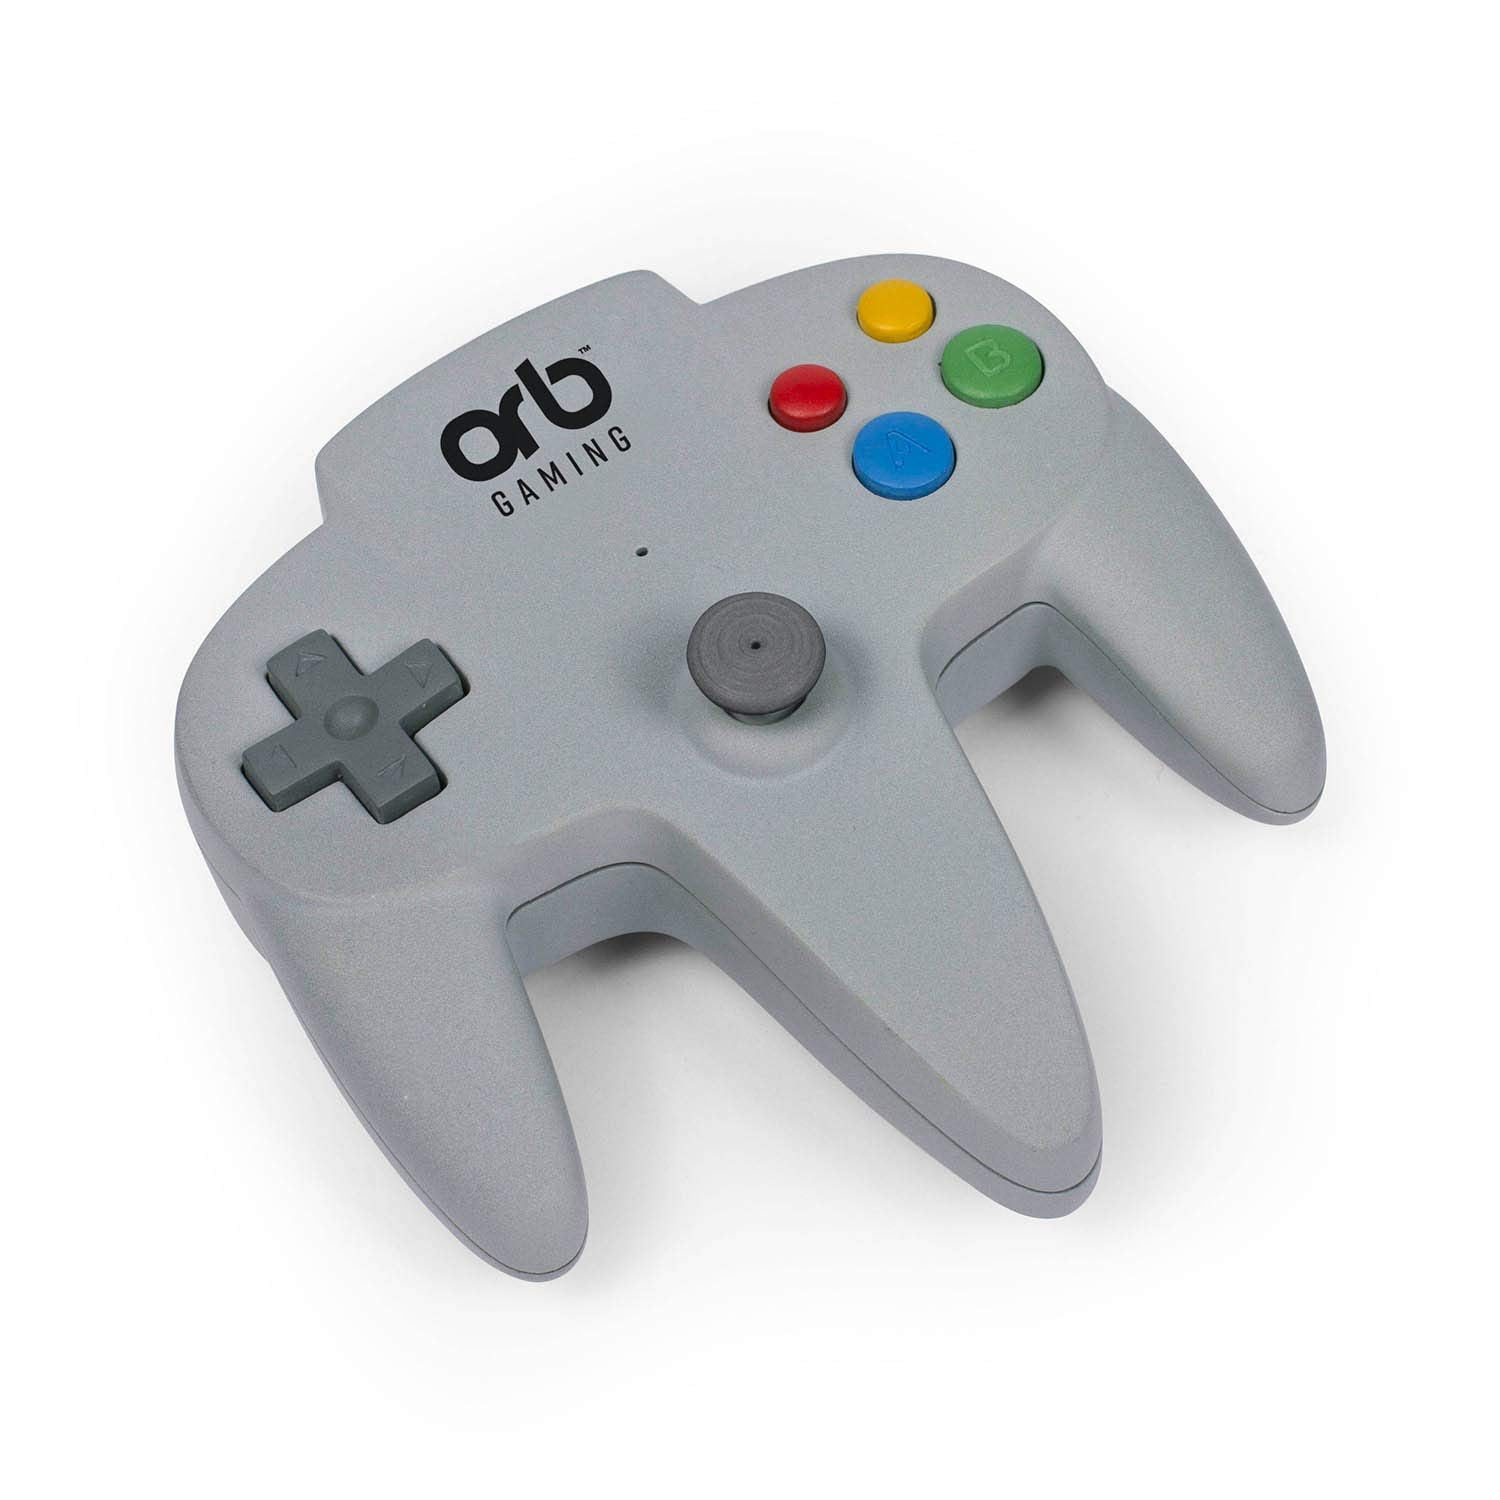 Orb Gaming Retro Arcade Controller Video Game